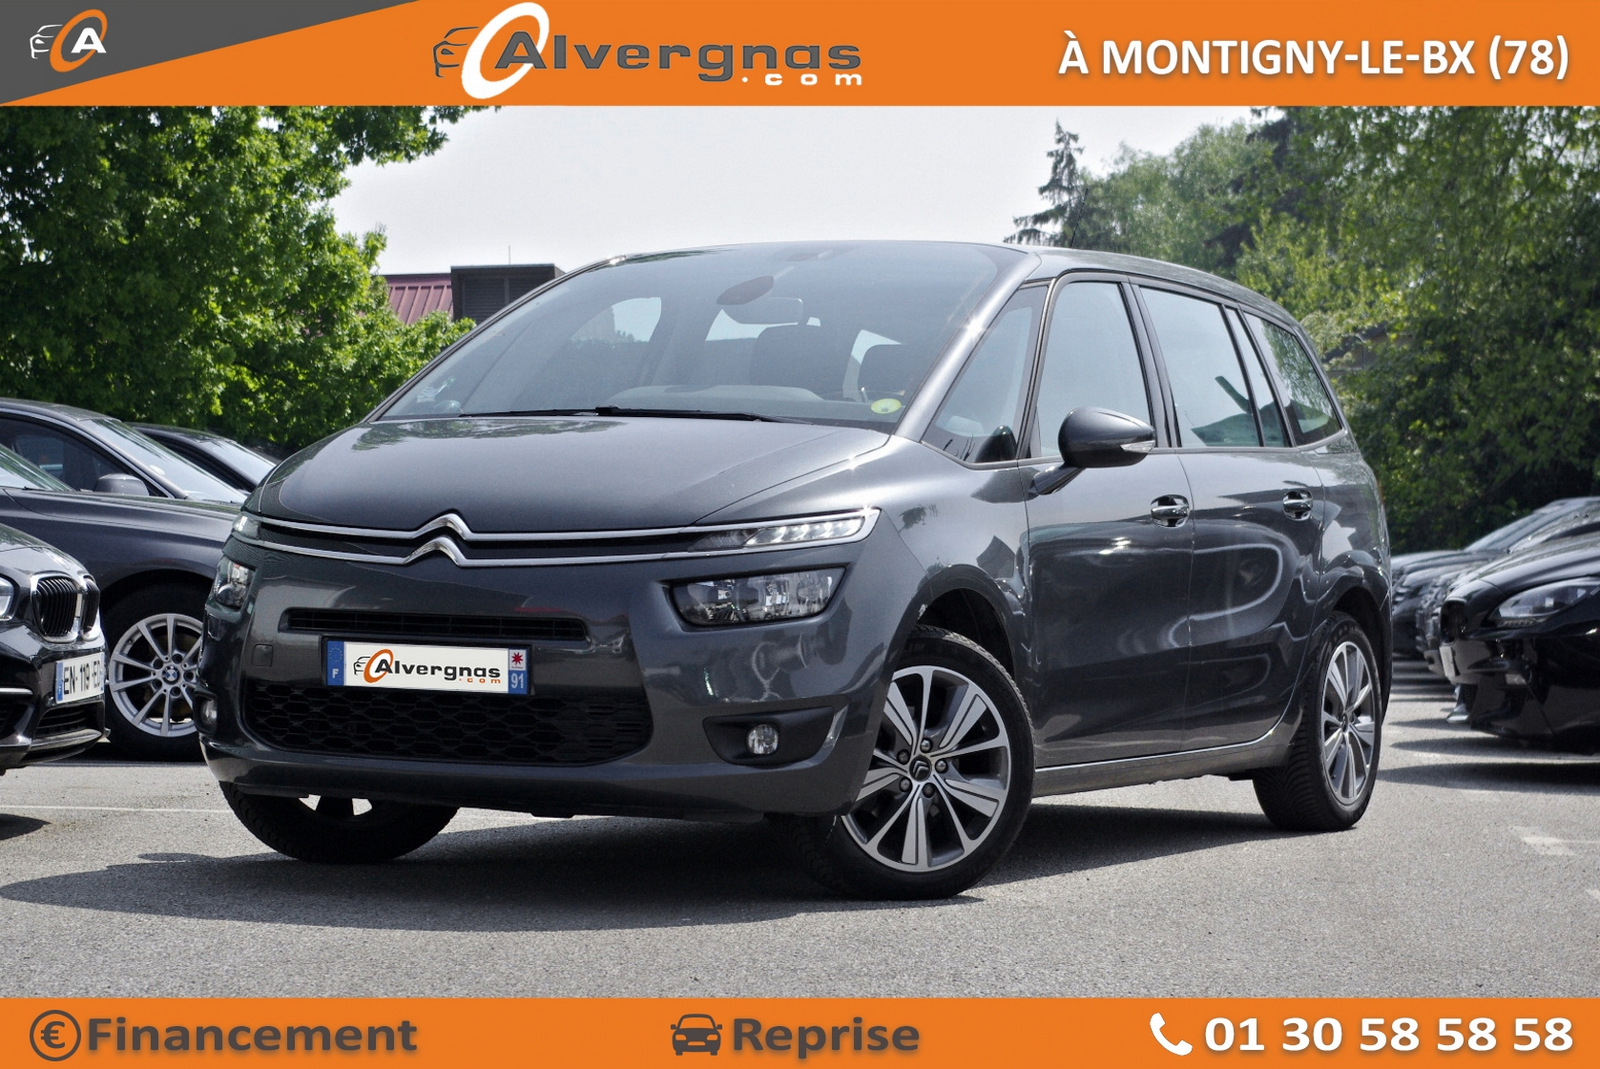 CITROEN GRAND C4 PICASSO d'occasion sur Paris